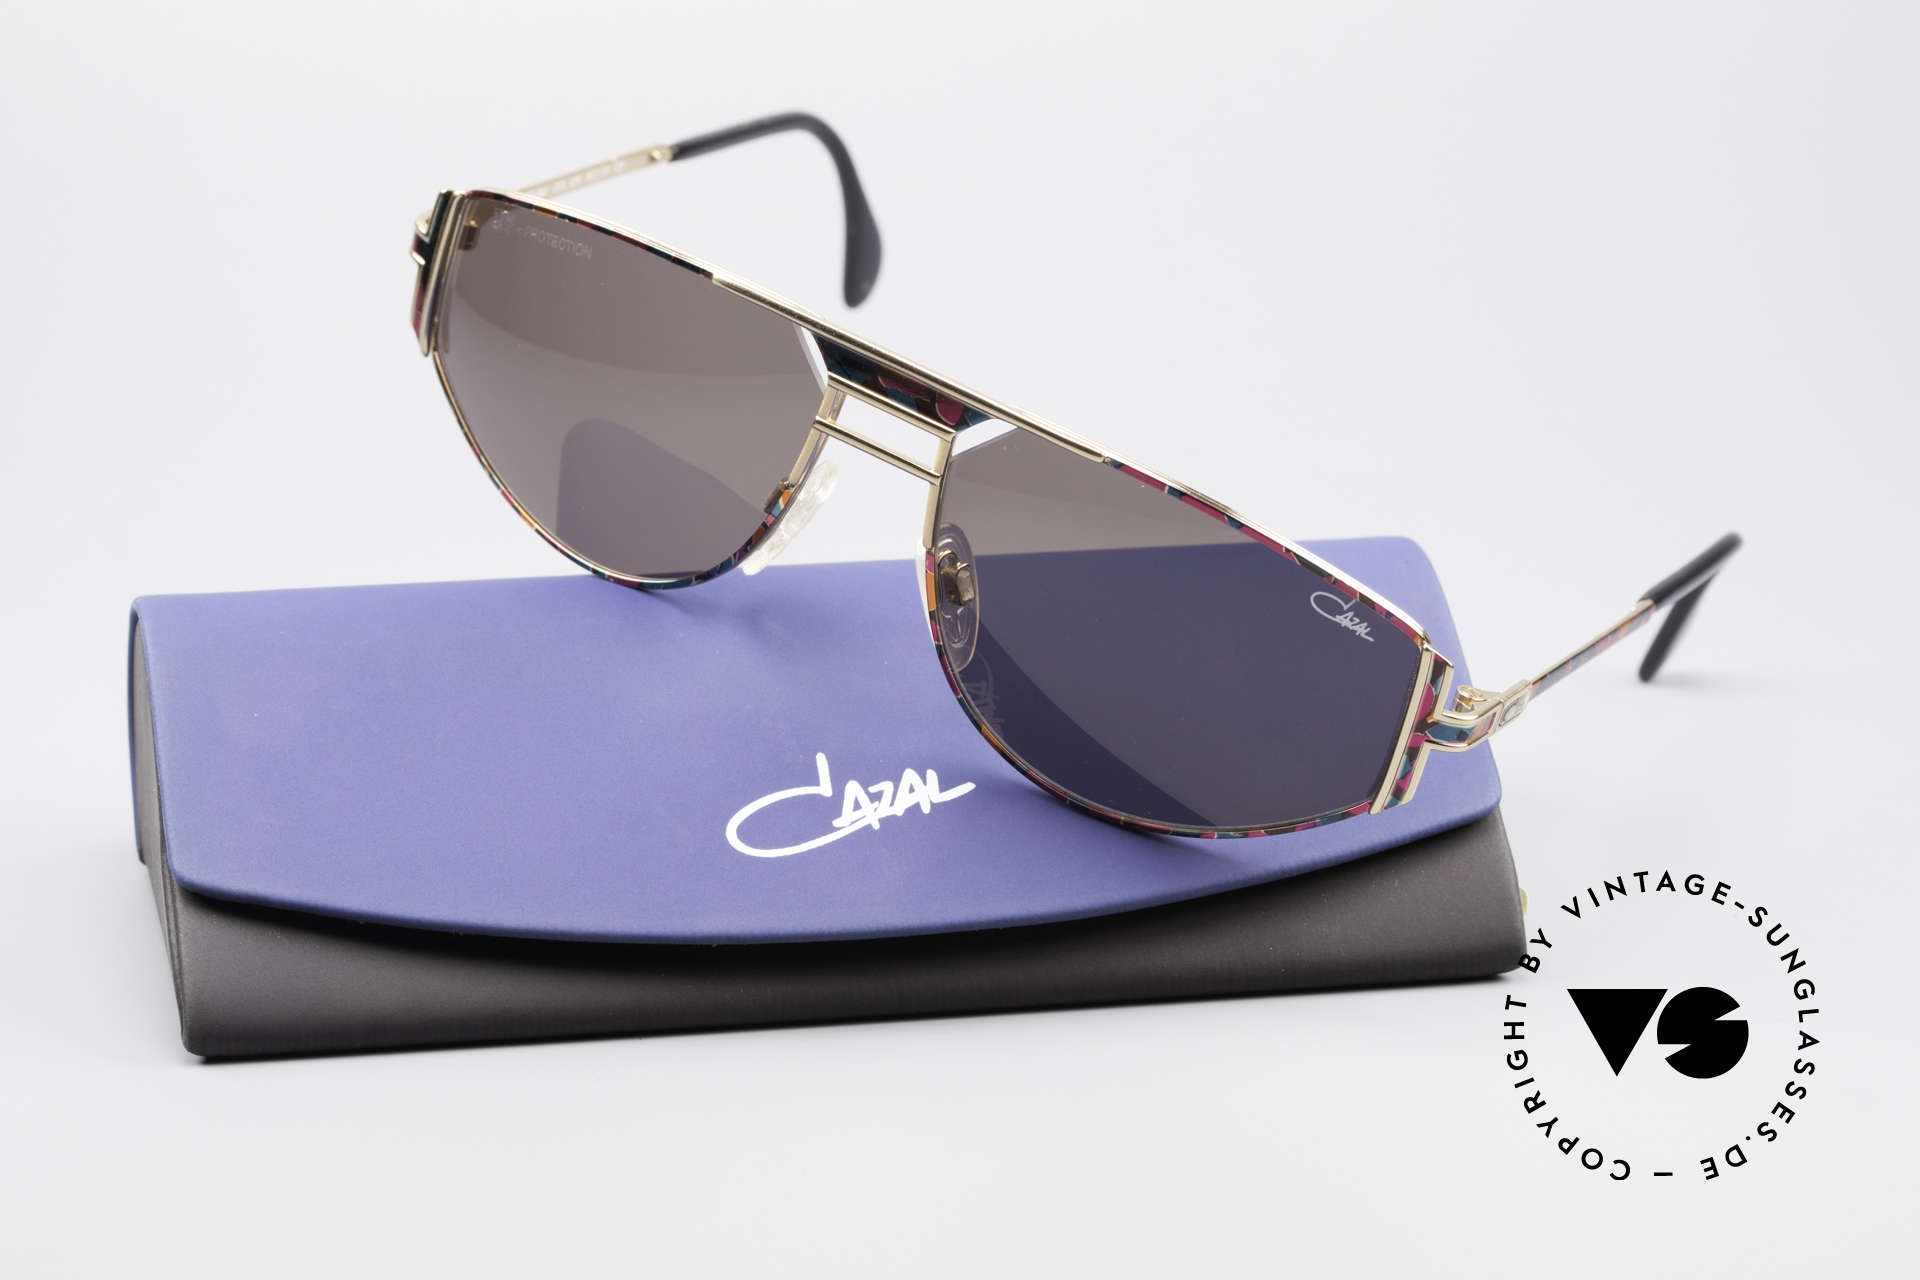 Cazal 964 True 90's No Retro Sunglasses, unworn rarity (like all our old vintage Cazal eyewear), Made for Men and Women